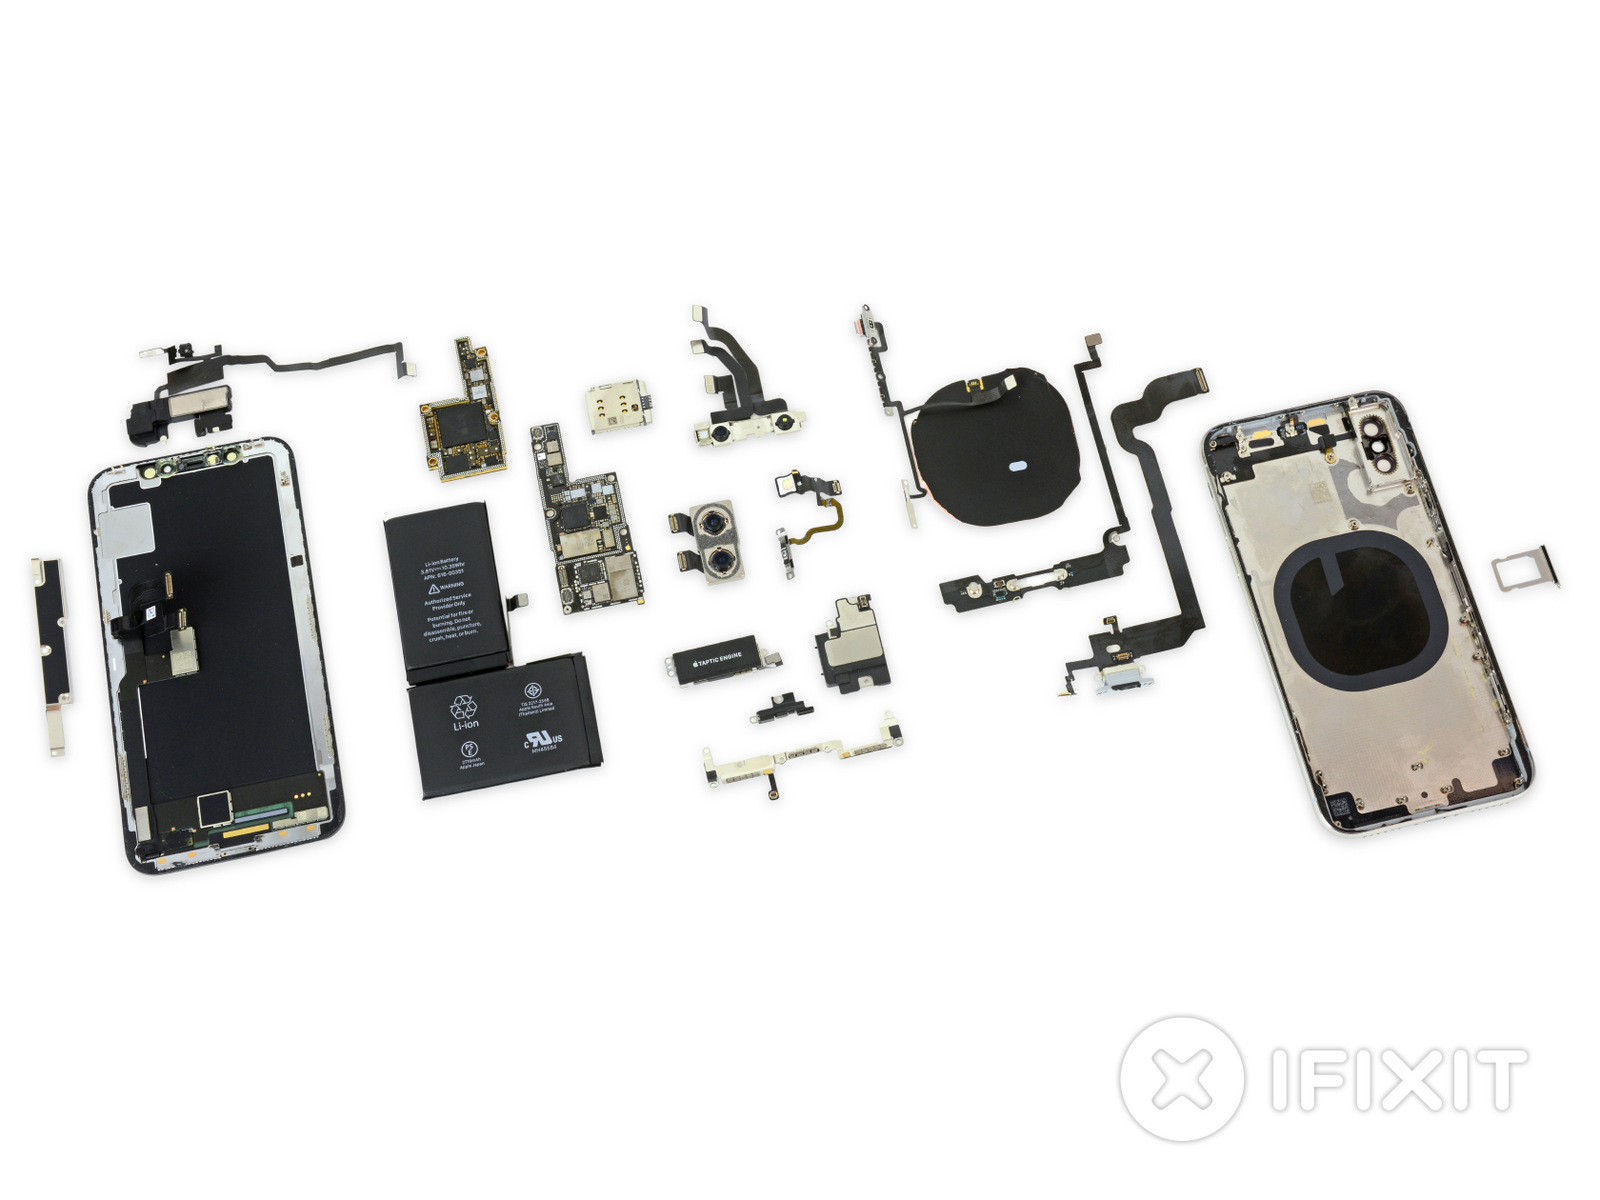 Iphone X Ifixit Teardown Exposes Face Id Reveals Two Battery Cells Circuit Breaker Replacement Project Carries Environmental Benefit The Components Vs First Generation Photo